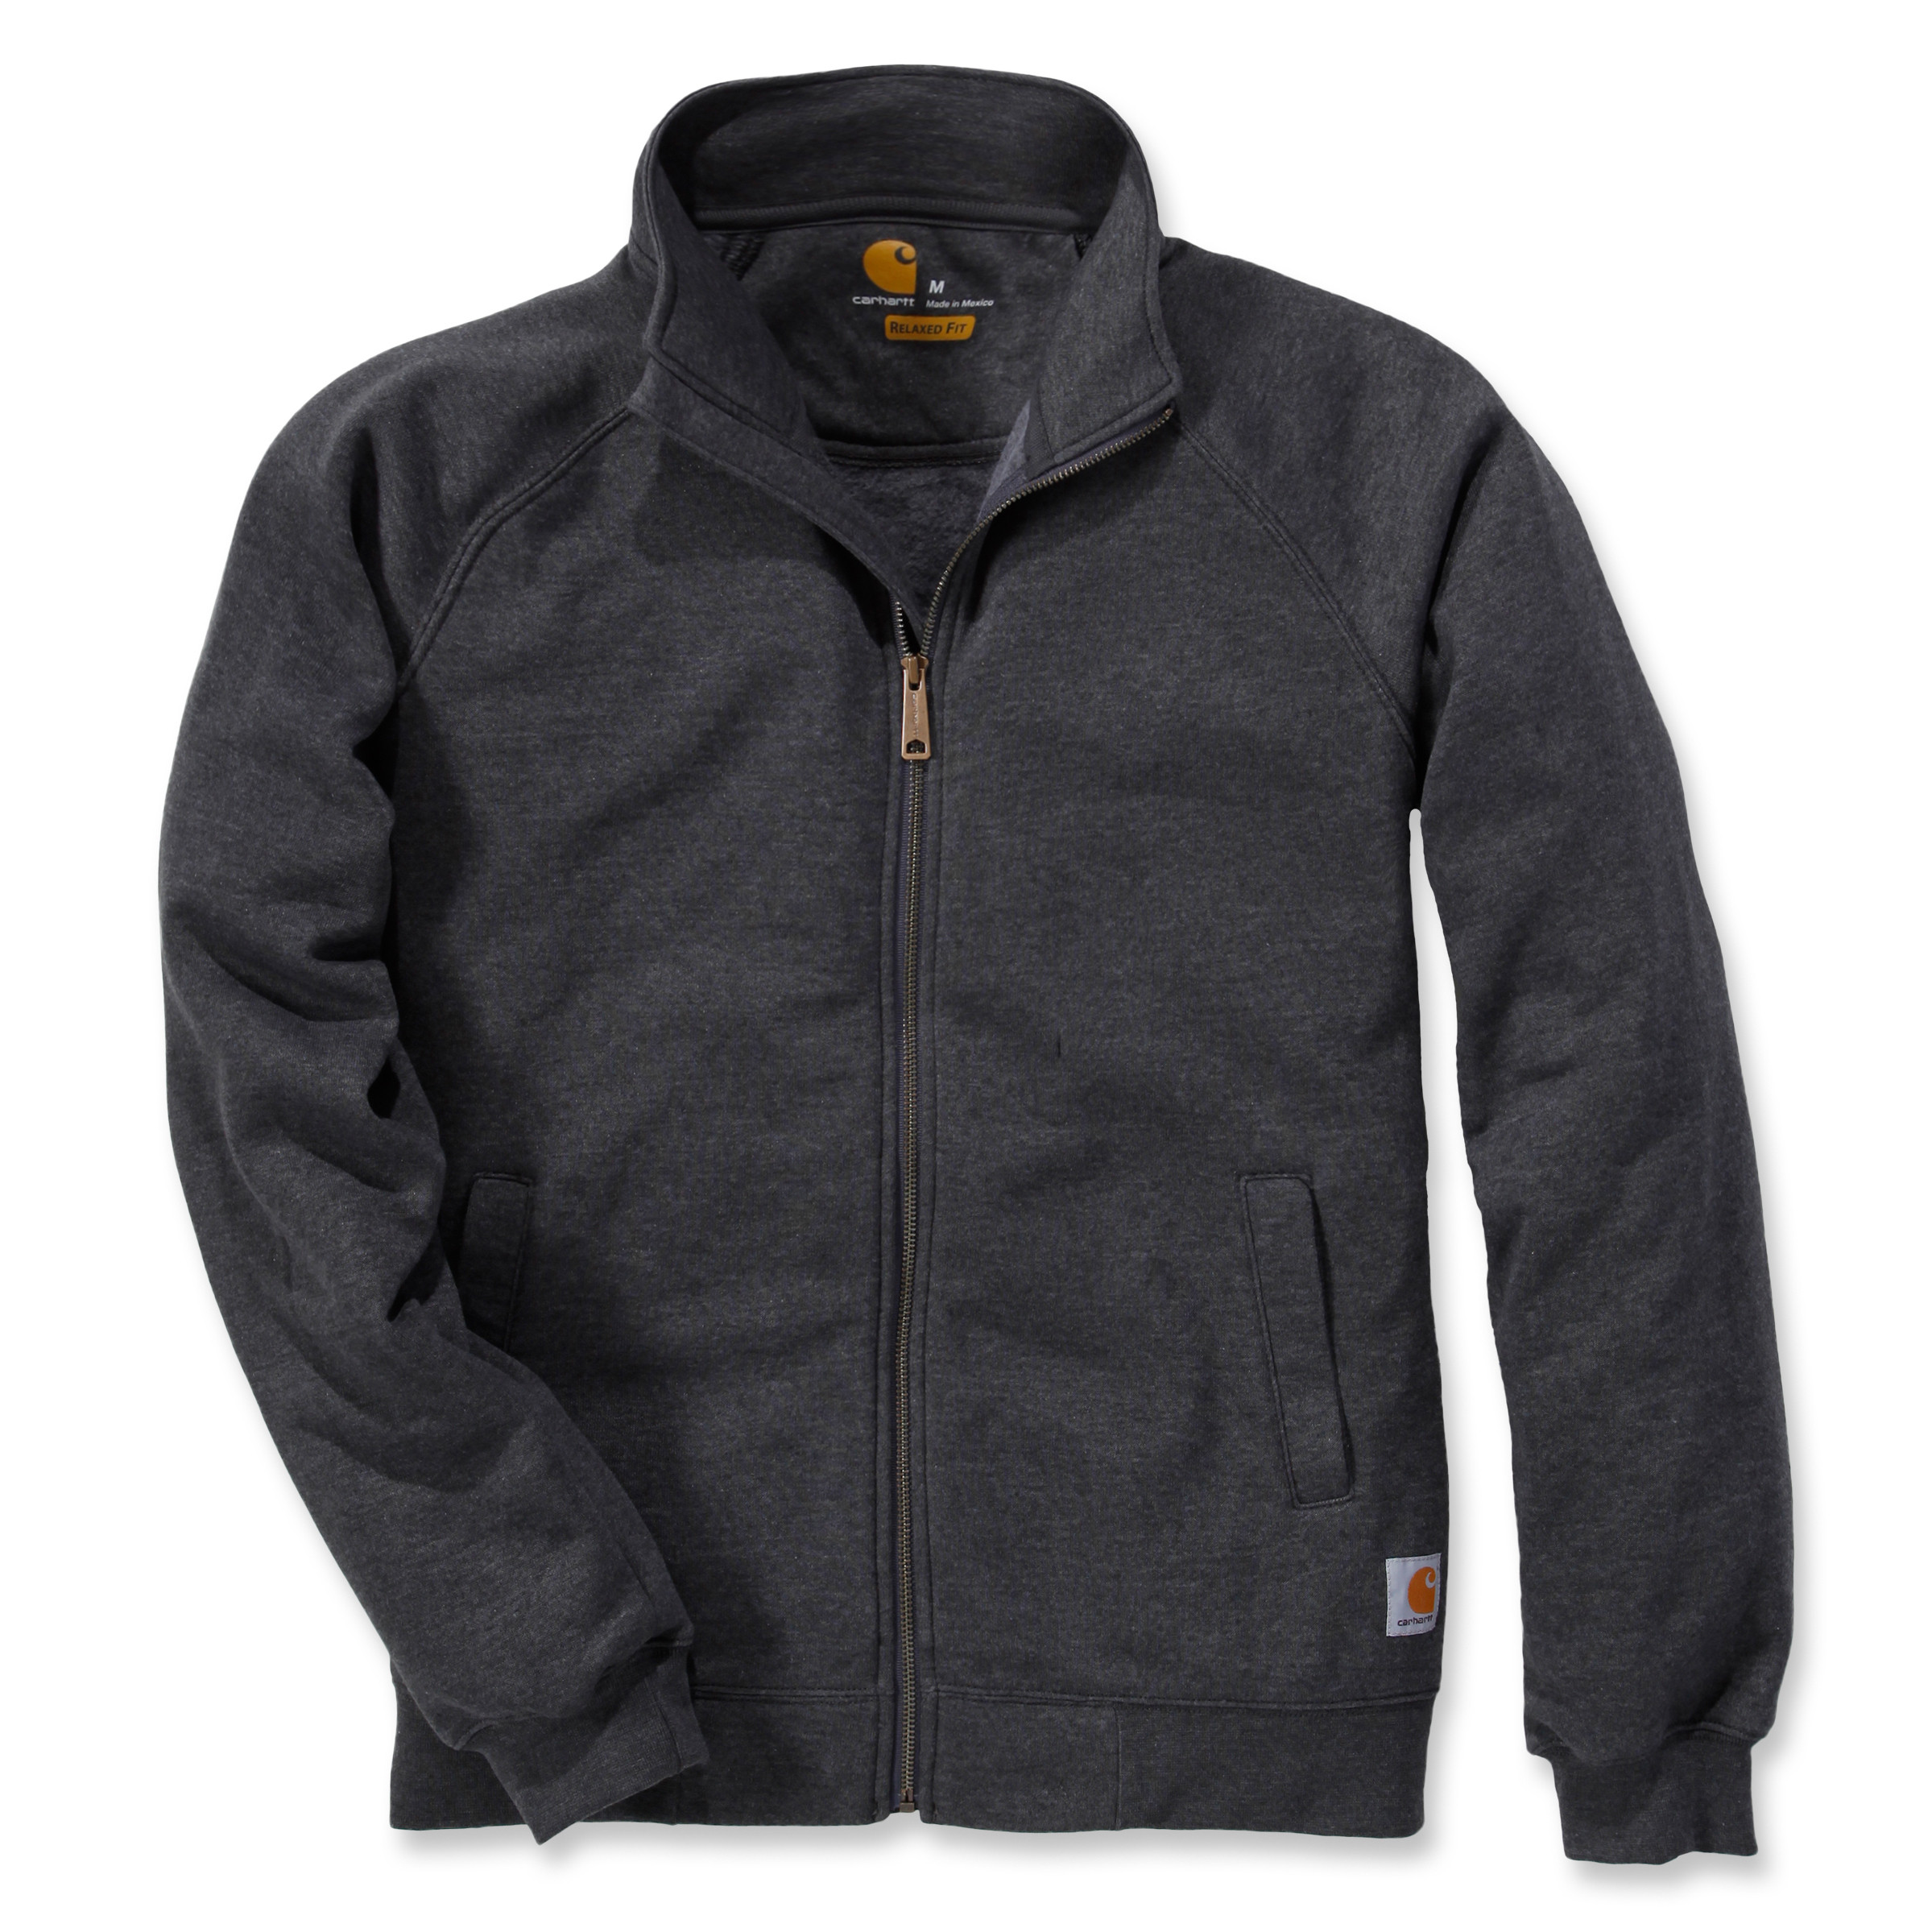 Свитшот на молнии Carhartt Midweight Mock Neck Zip Sweatshirt - K350 (Carbon Heather, XL)